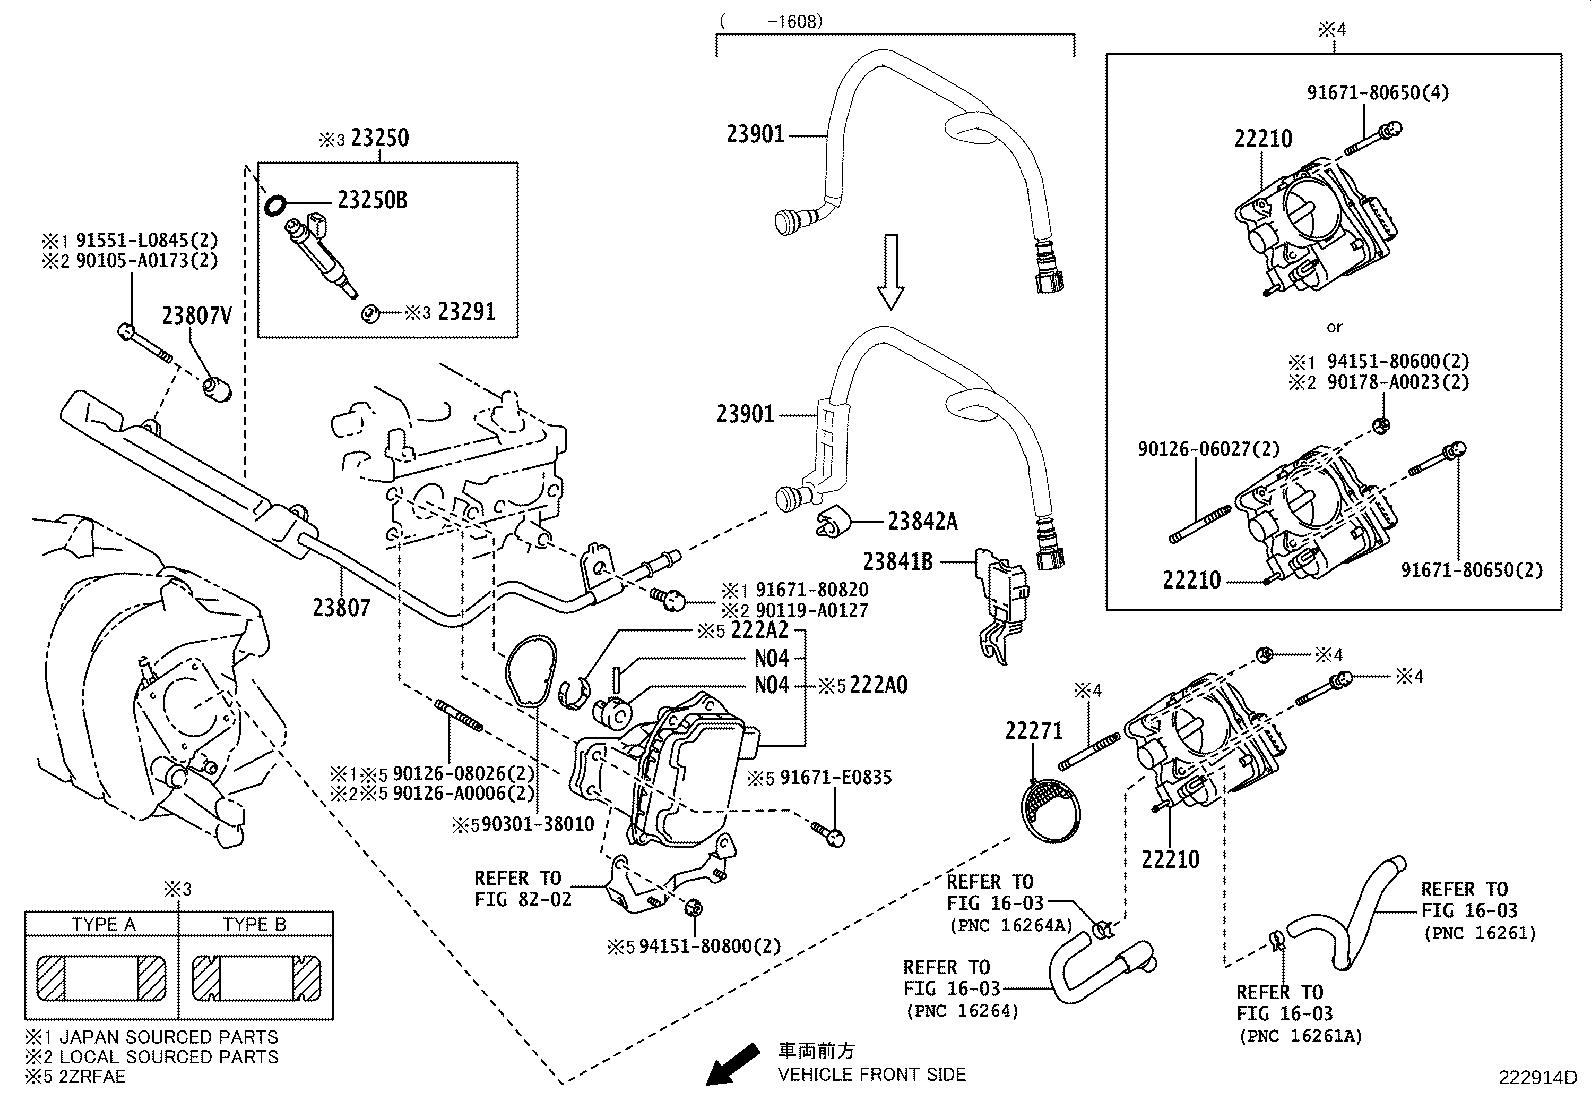 Toyota Corolla Engine Variable Valve Timing (VVT) Solenoid